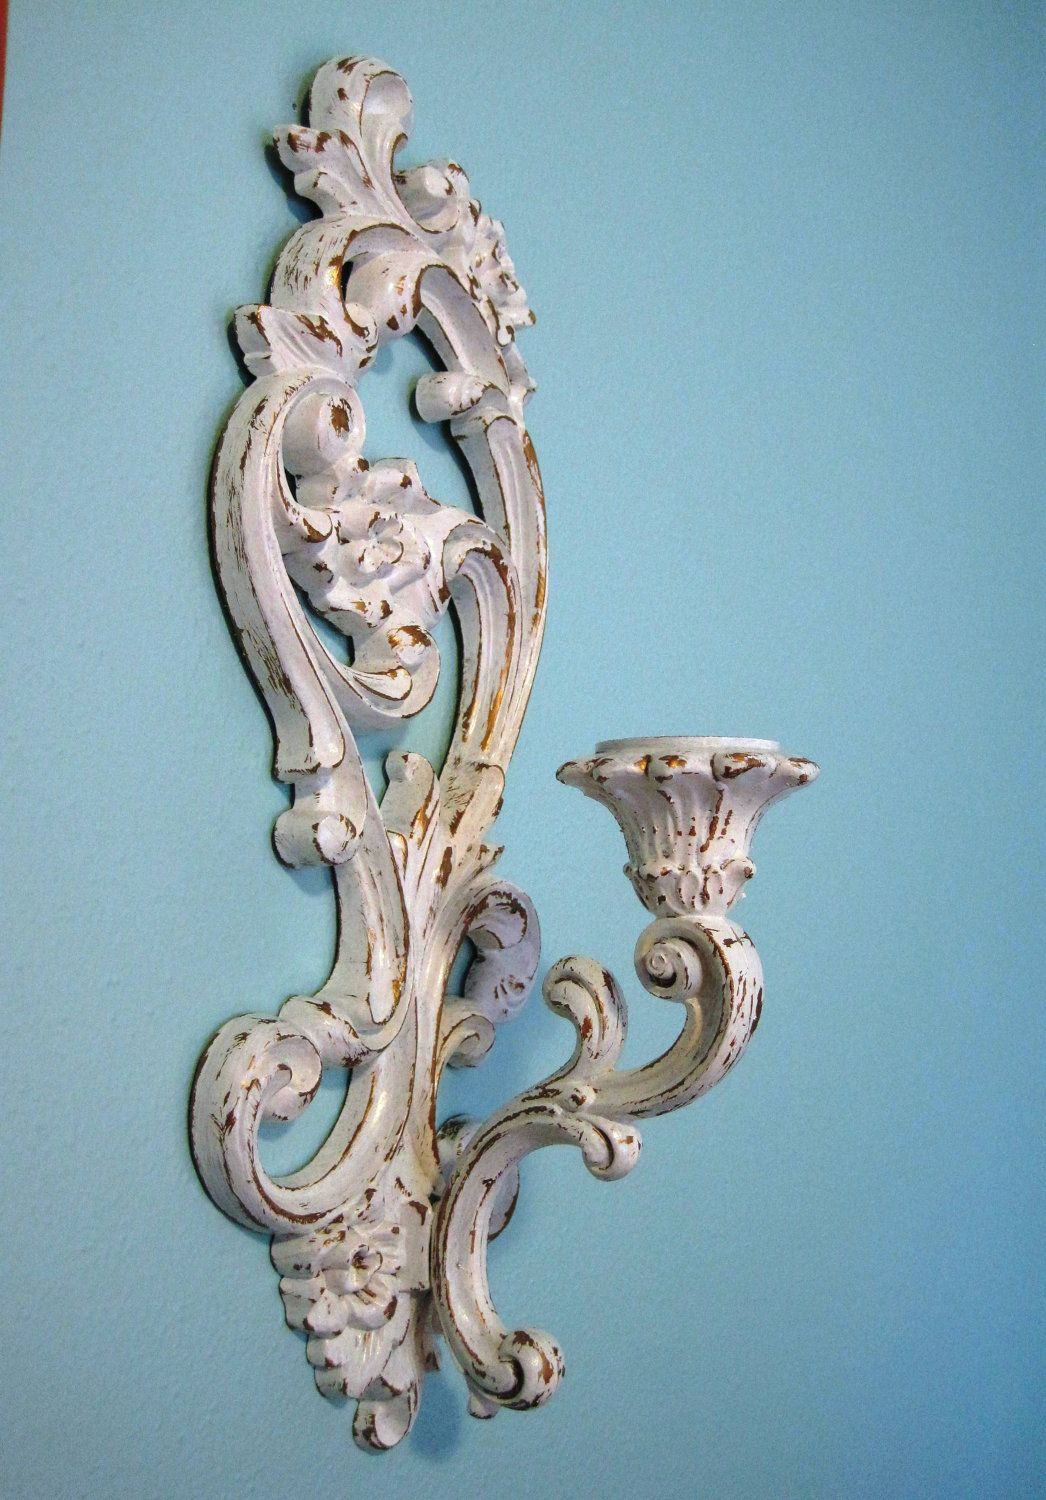 Bedroom Wall Sconce Lights Wall Sconces Bedroom Candle Holder Wall Sconce Sconces